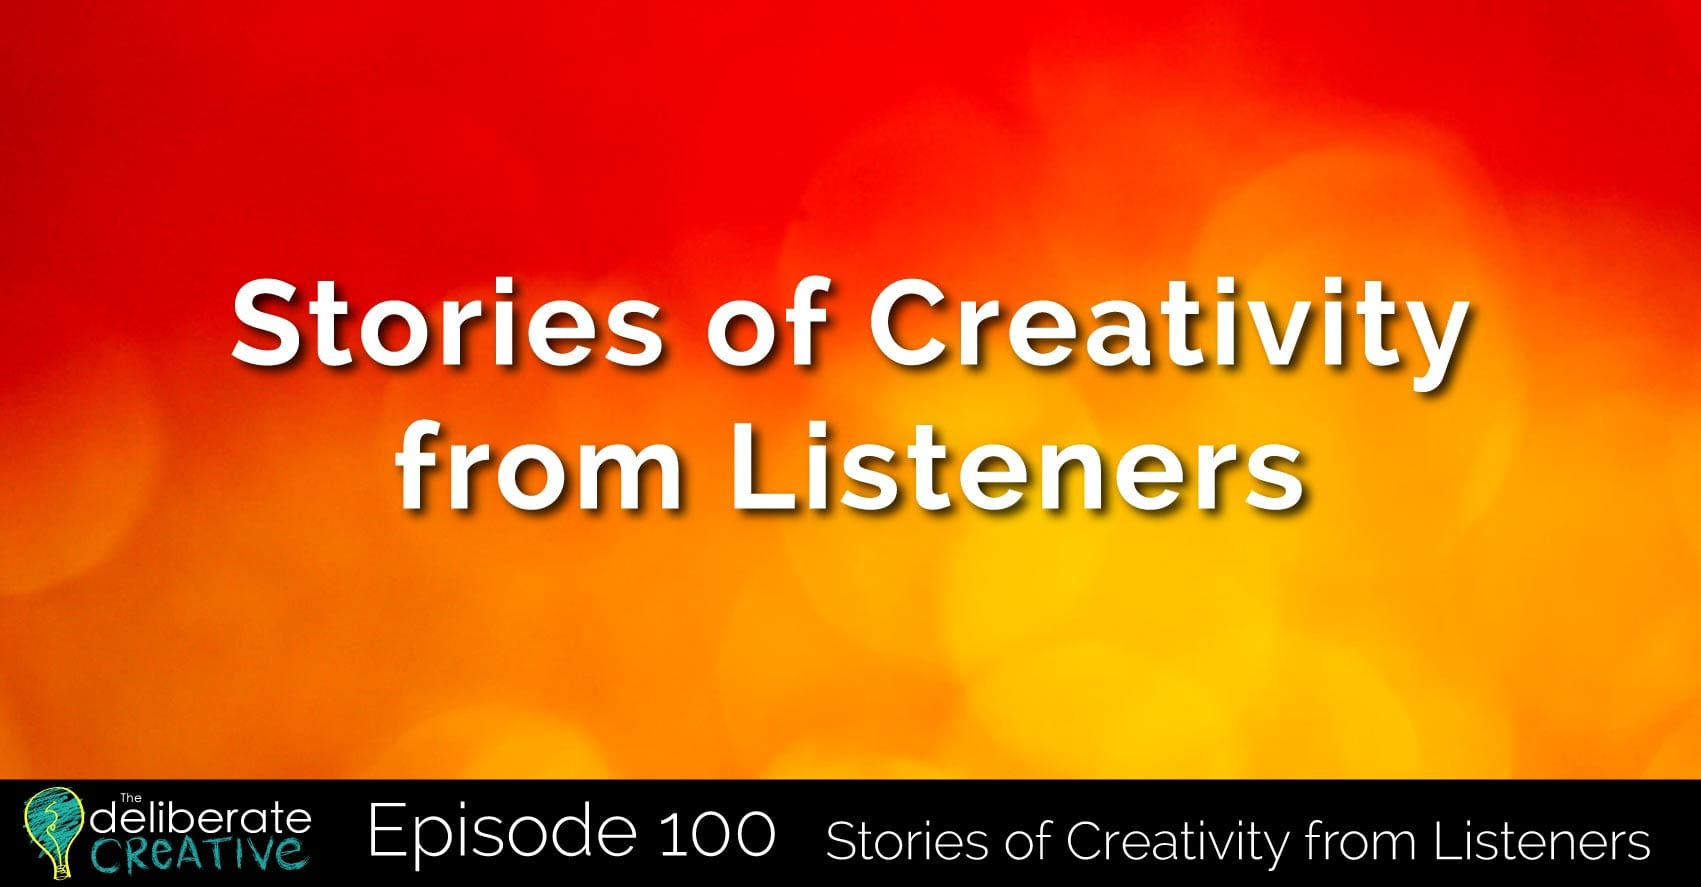 The Deliberate Creative Podcast Episode 100: Creativity Stories from Listeners